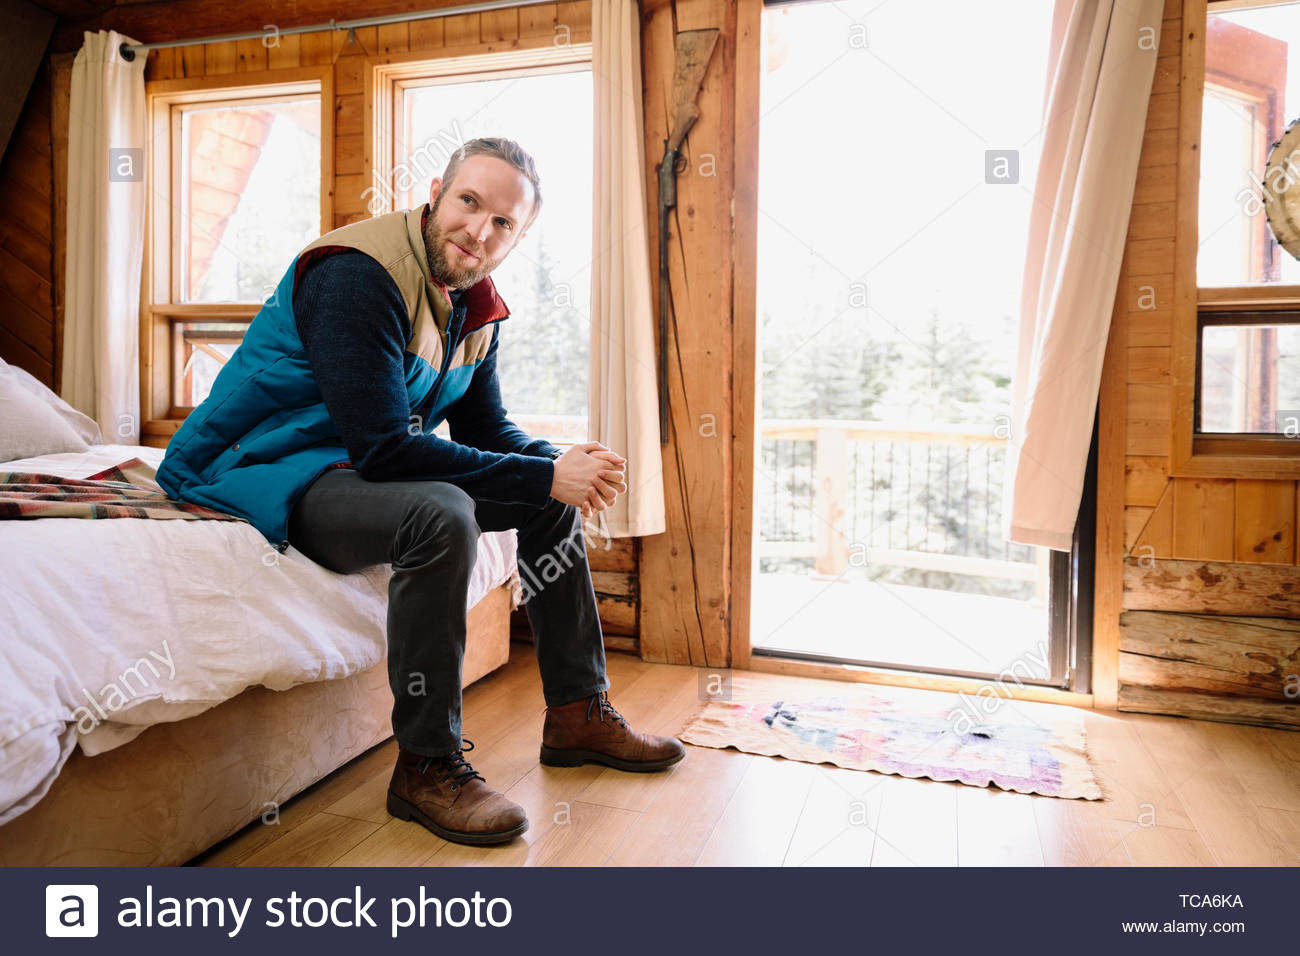 Portrait of smiling man relaxing on bed cabin Banque D'Images